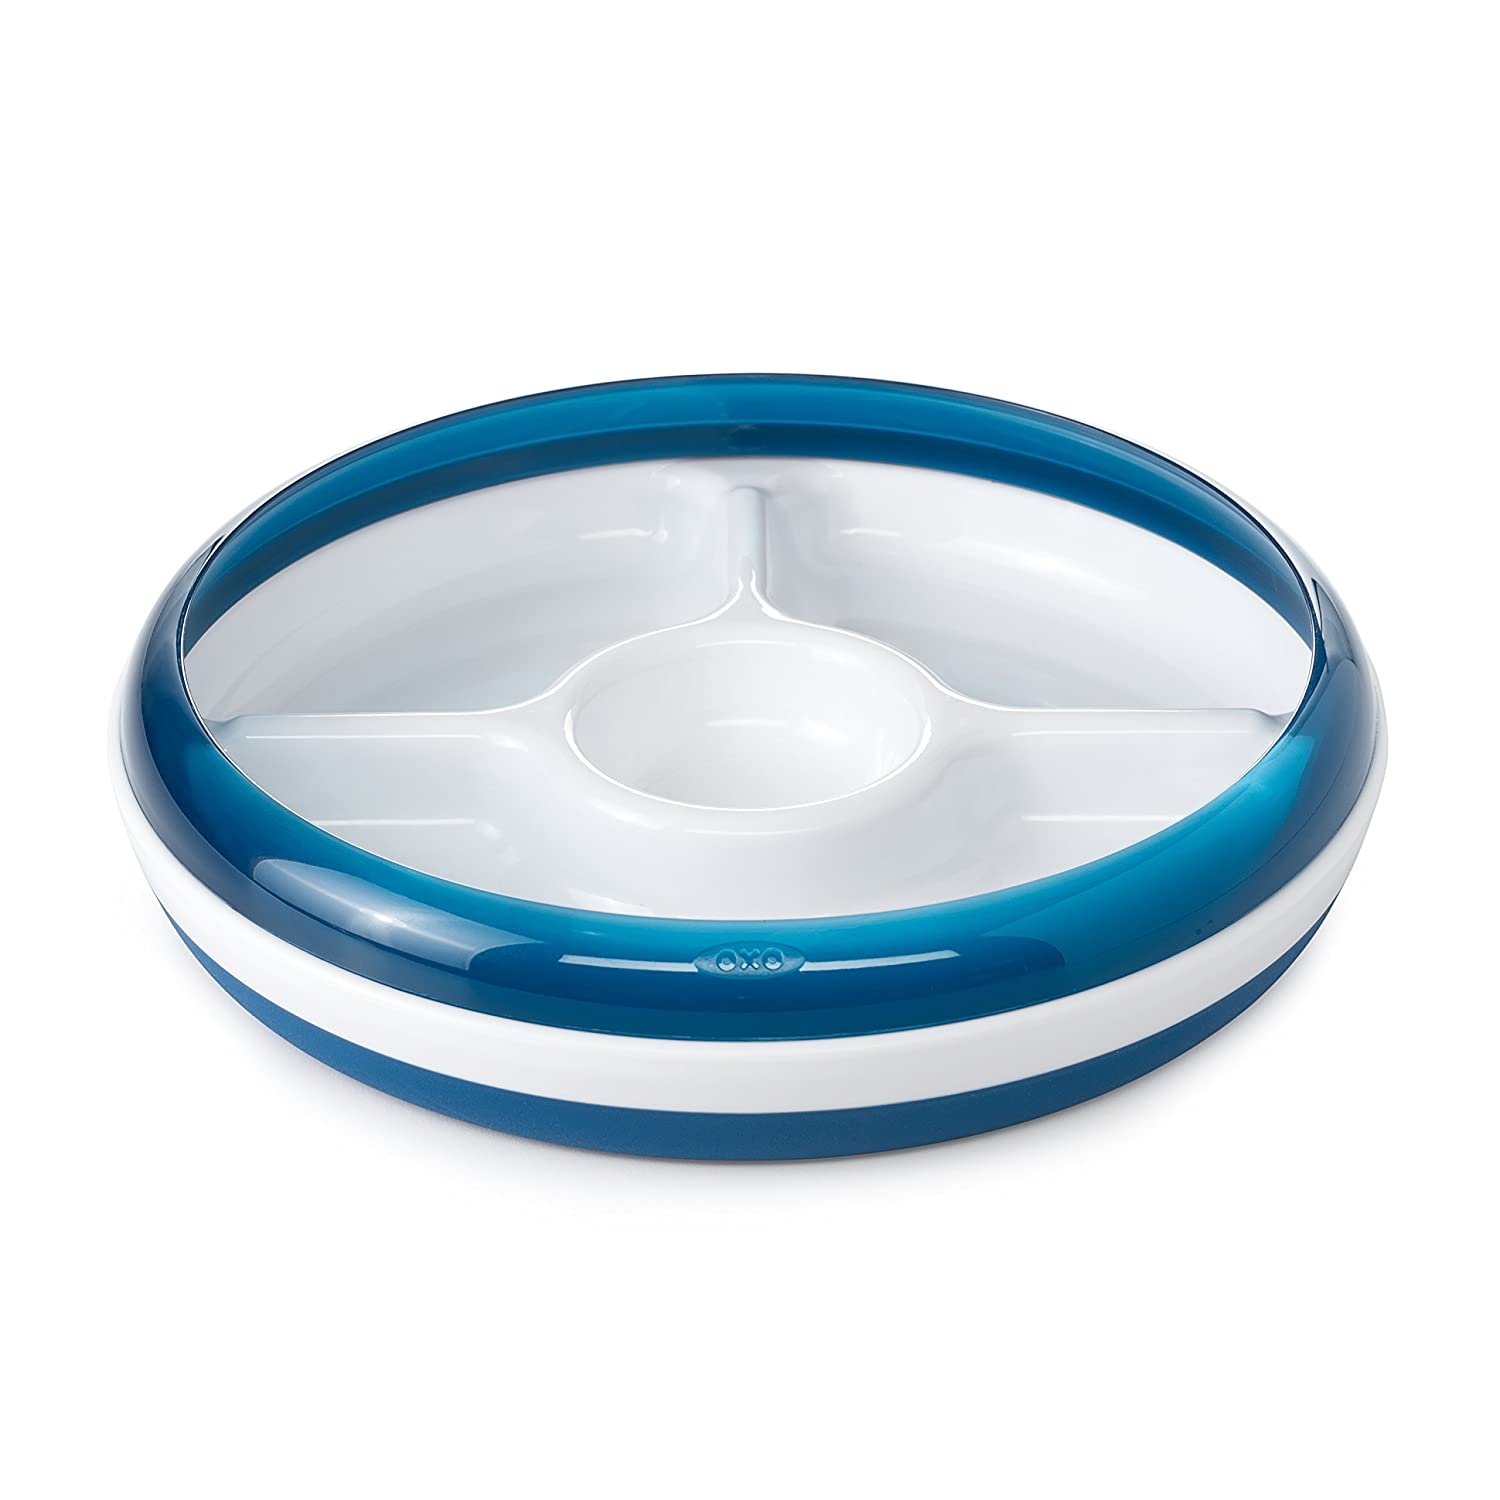 OXO Tot Divided Plate with Removable Training Ring - Navy